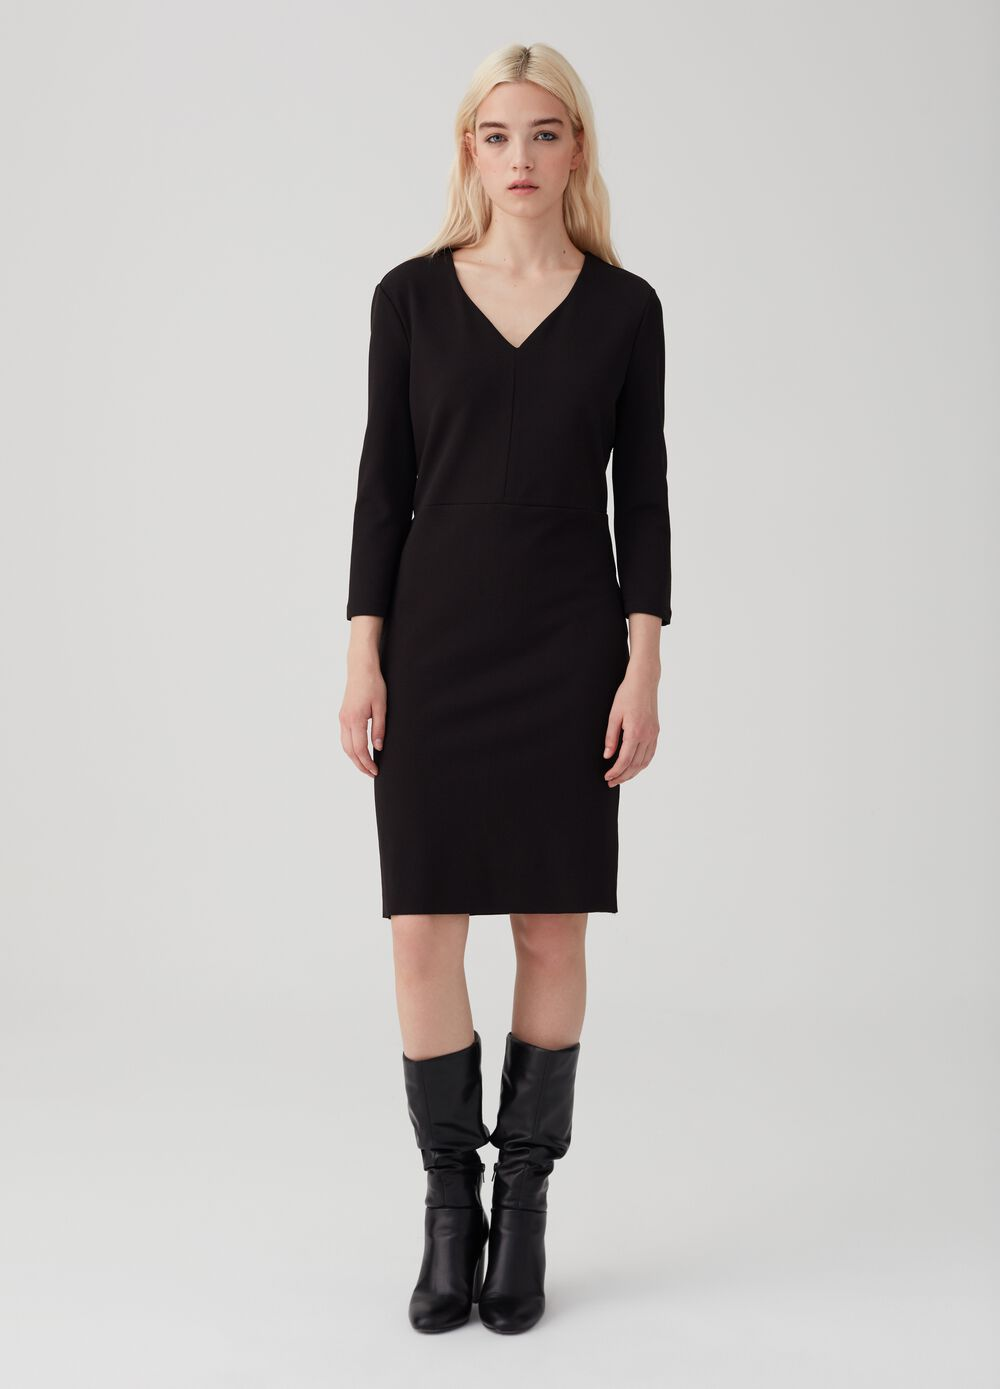 Stretch fabric dress with three-quarter sleeves